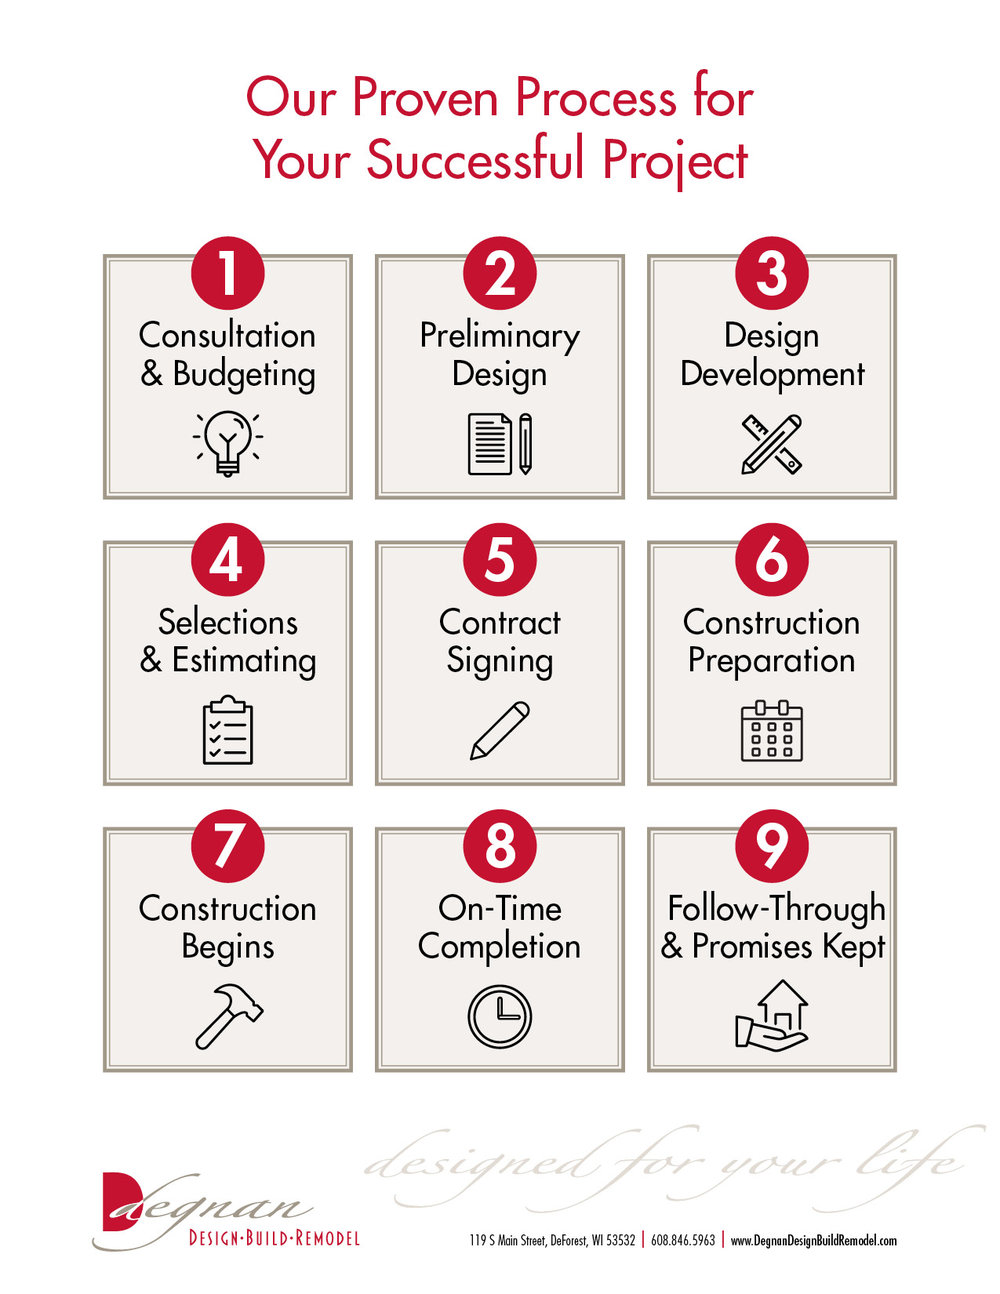 - Does your remodeler have a written procedure for the design-build process? Learn more about ours by clicking this photo.